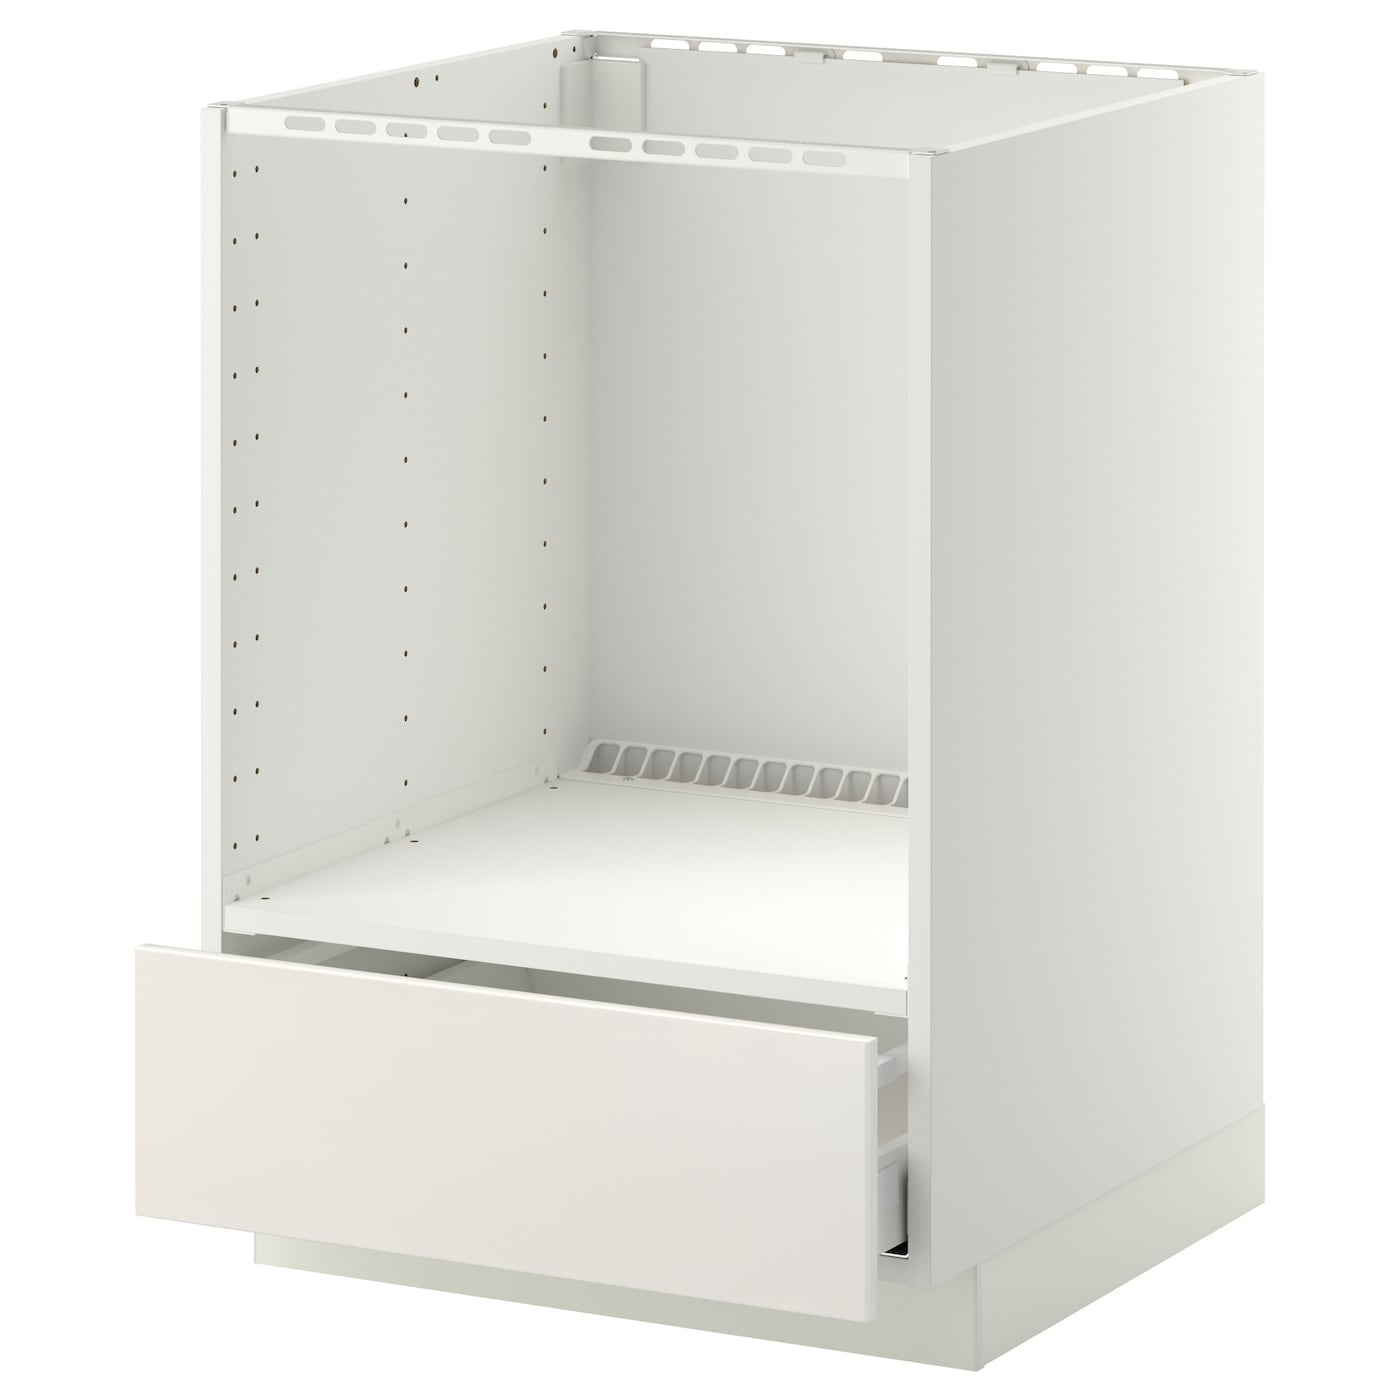 Metod maximera base cabinet for oven with drawer white for Who makes ikea microwaves